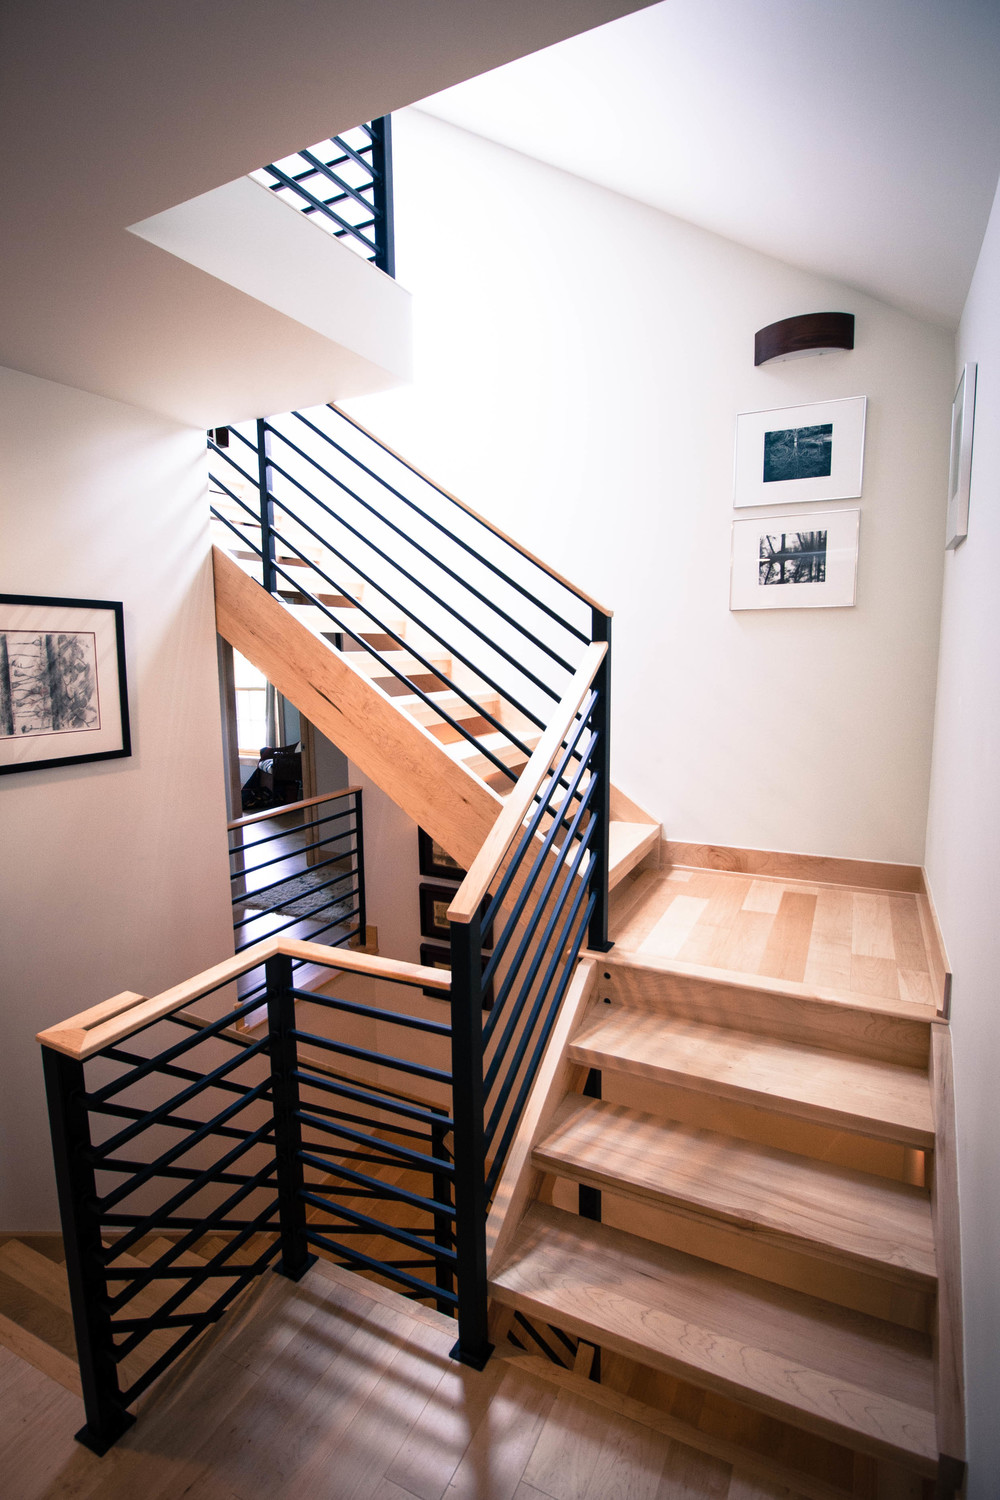 Sleek and clean powder coated steel railing combined with natural maple hand rails help to preserve and accentuate the modern styling present in and